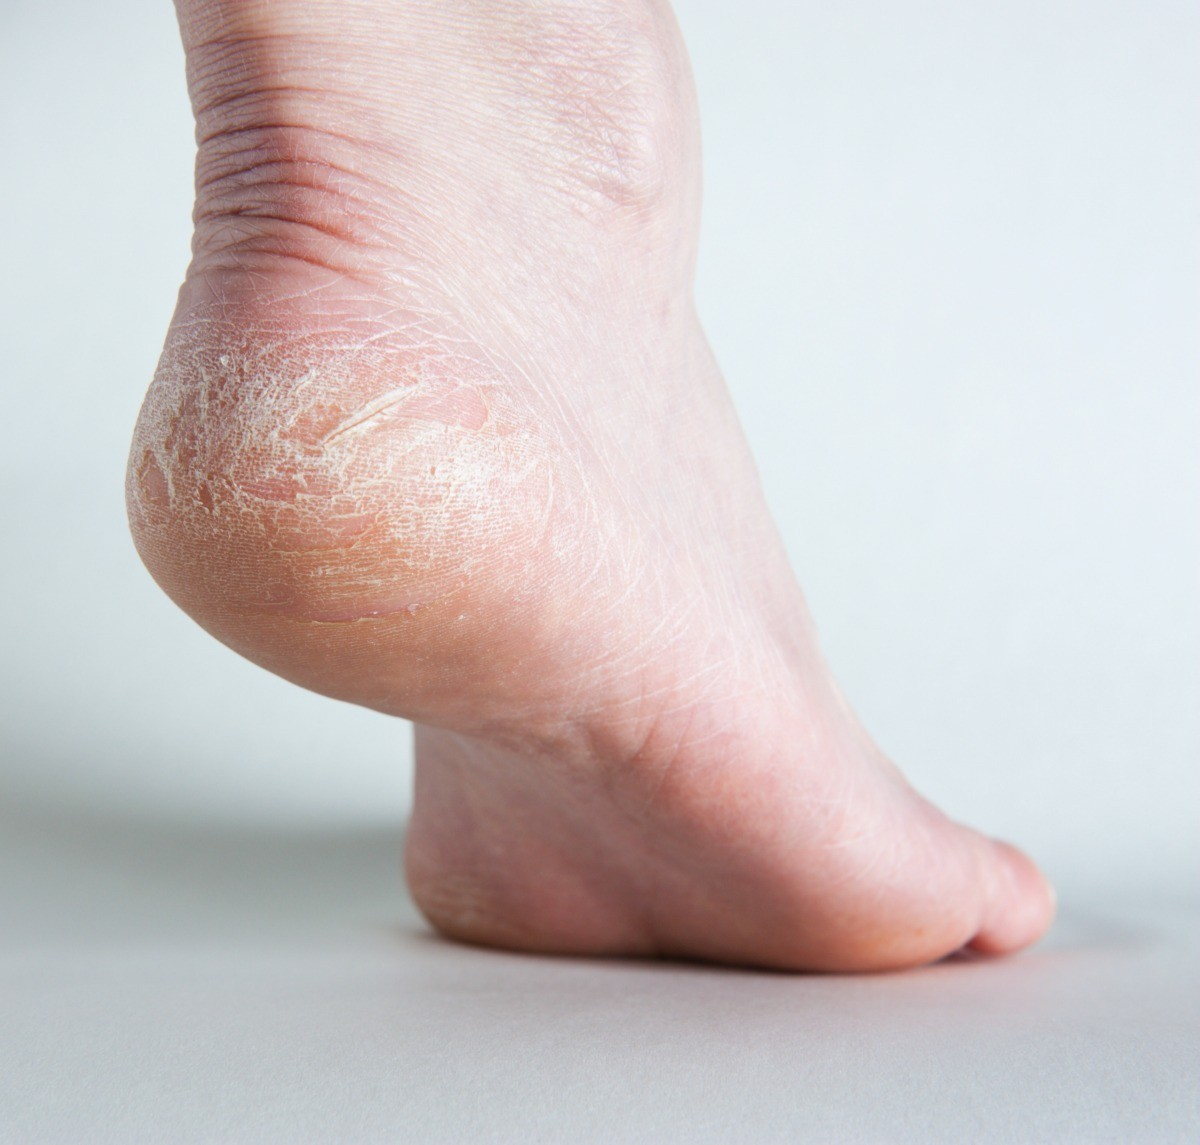 Home Remedies for Dry or Cracked Feet | ThriftyFun